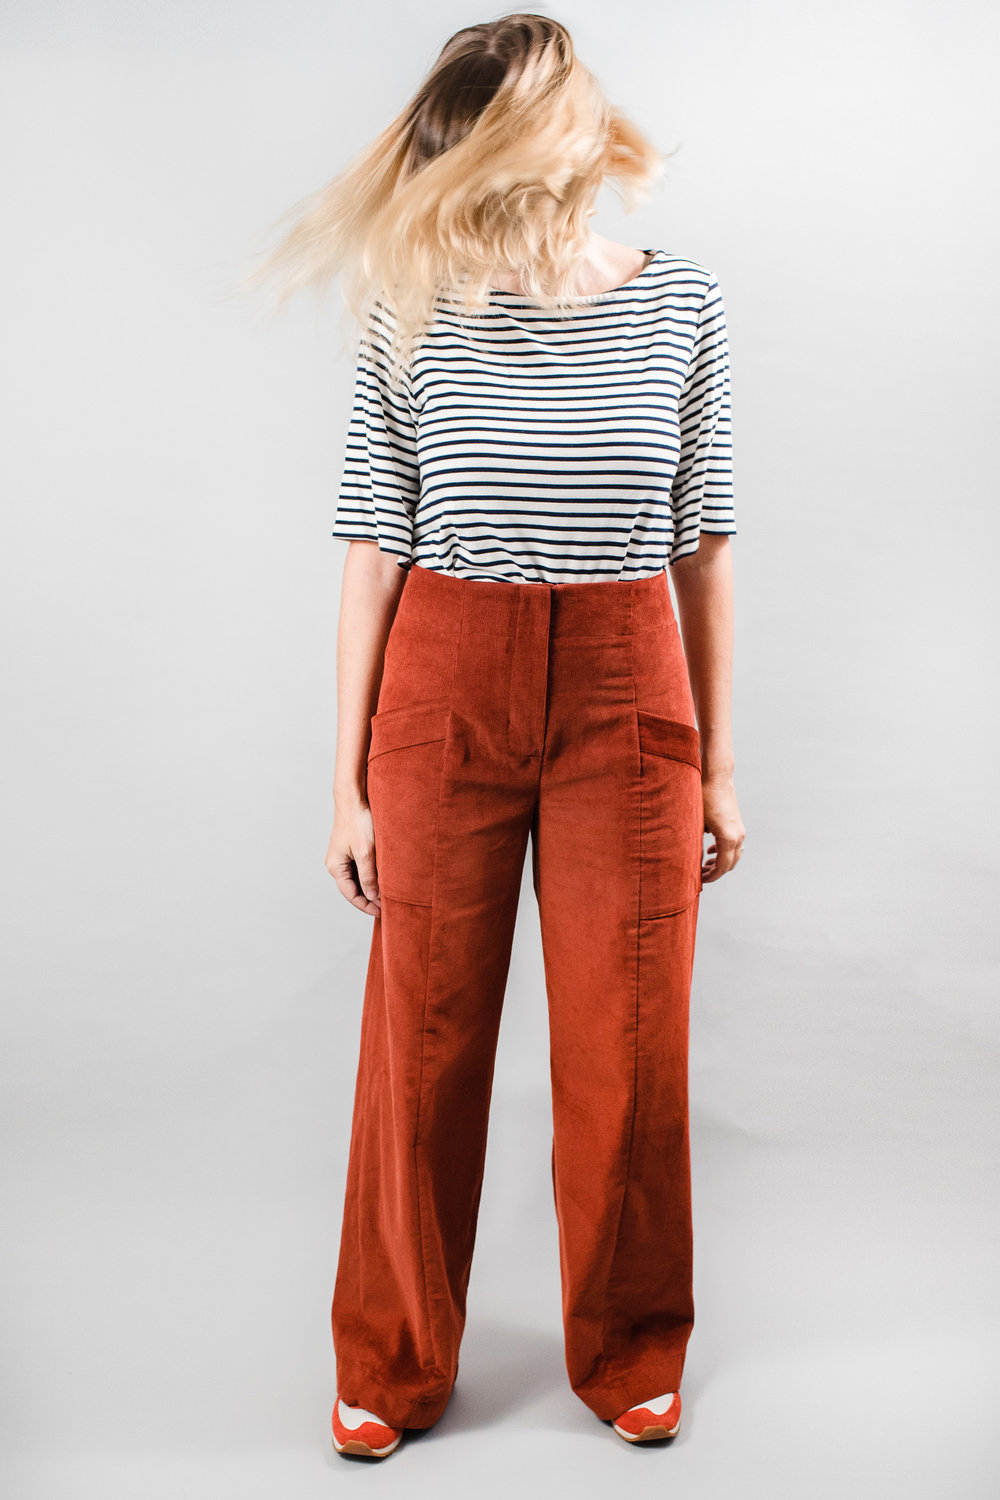 Parasol-high-waisted-trousers-pdf-sewing-pattern01.jpg